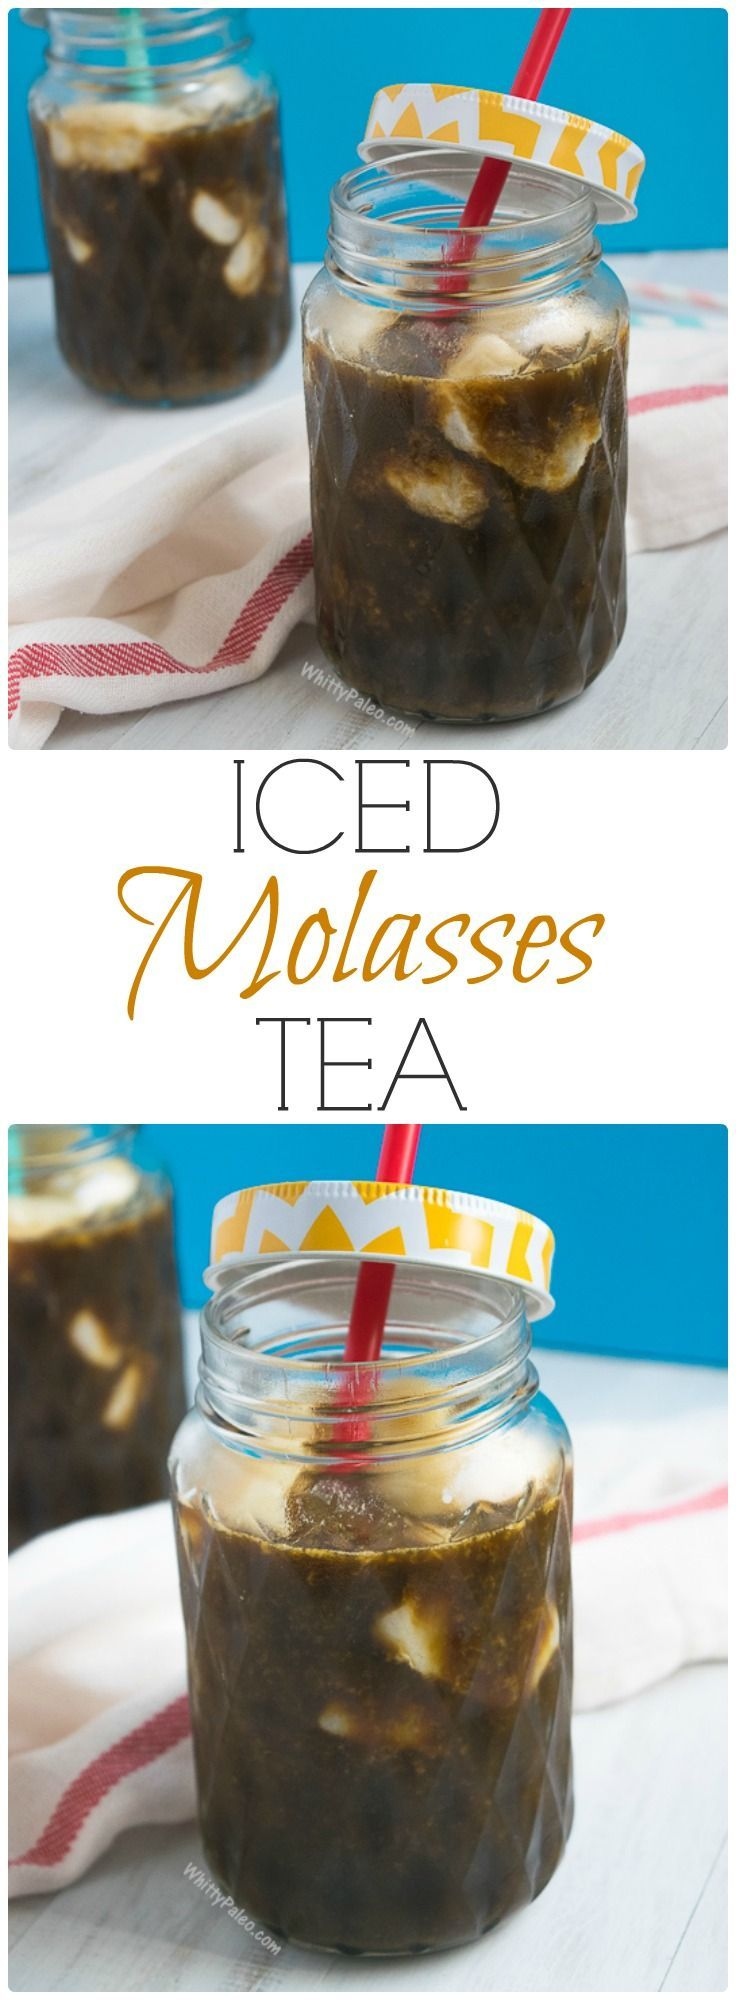 Organic Blackstrap Molasses Iced Tea + Health Benefits from WhittyPaleo.com